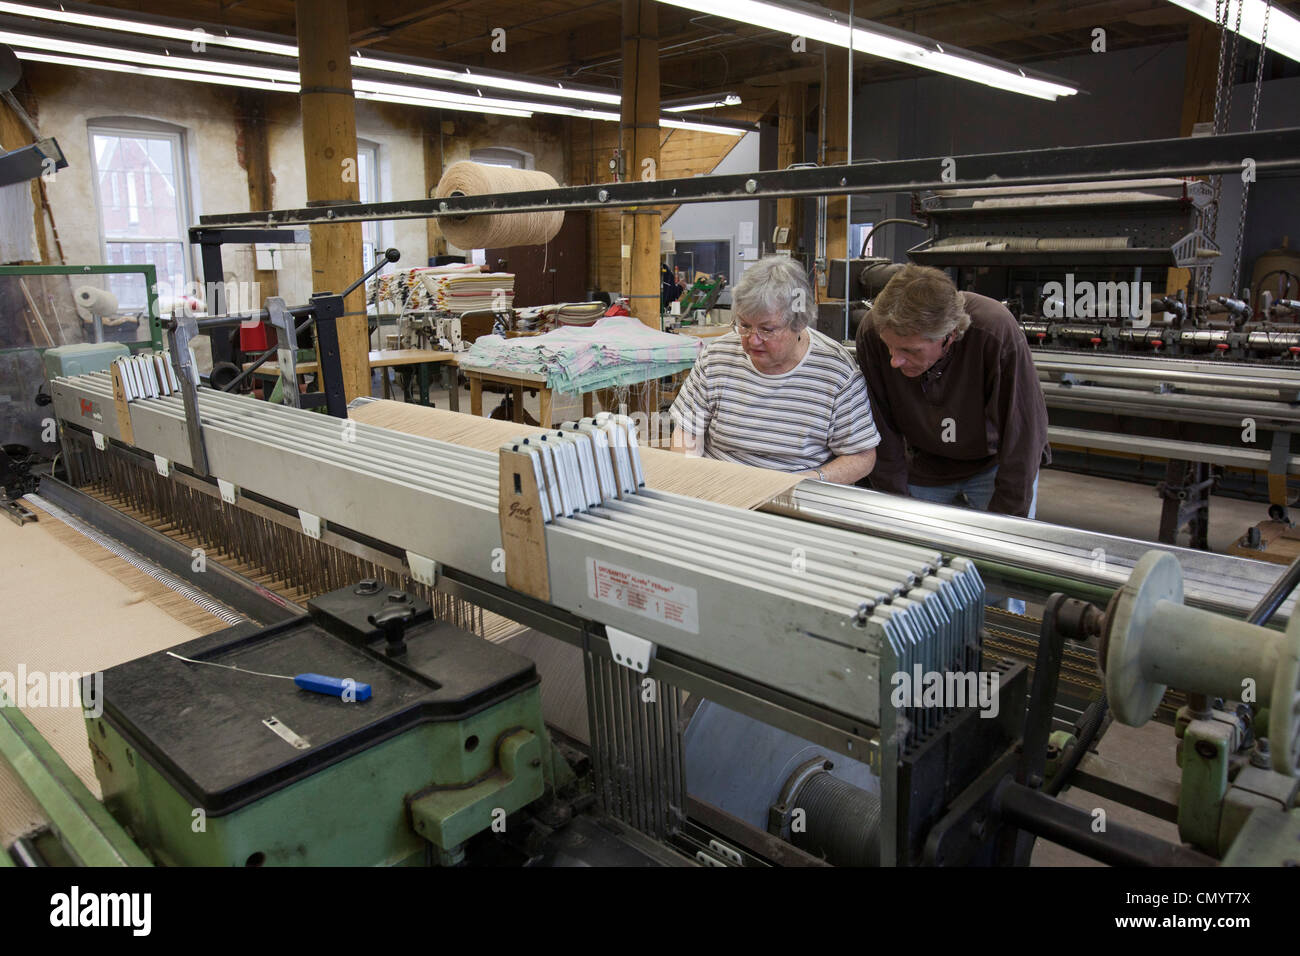 Workers operate a loom at the historic Amana Wollen Mill - Stock Image